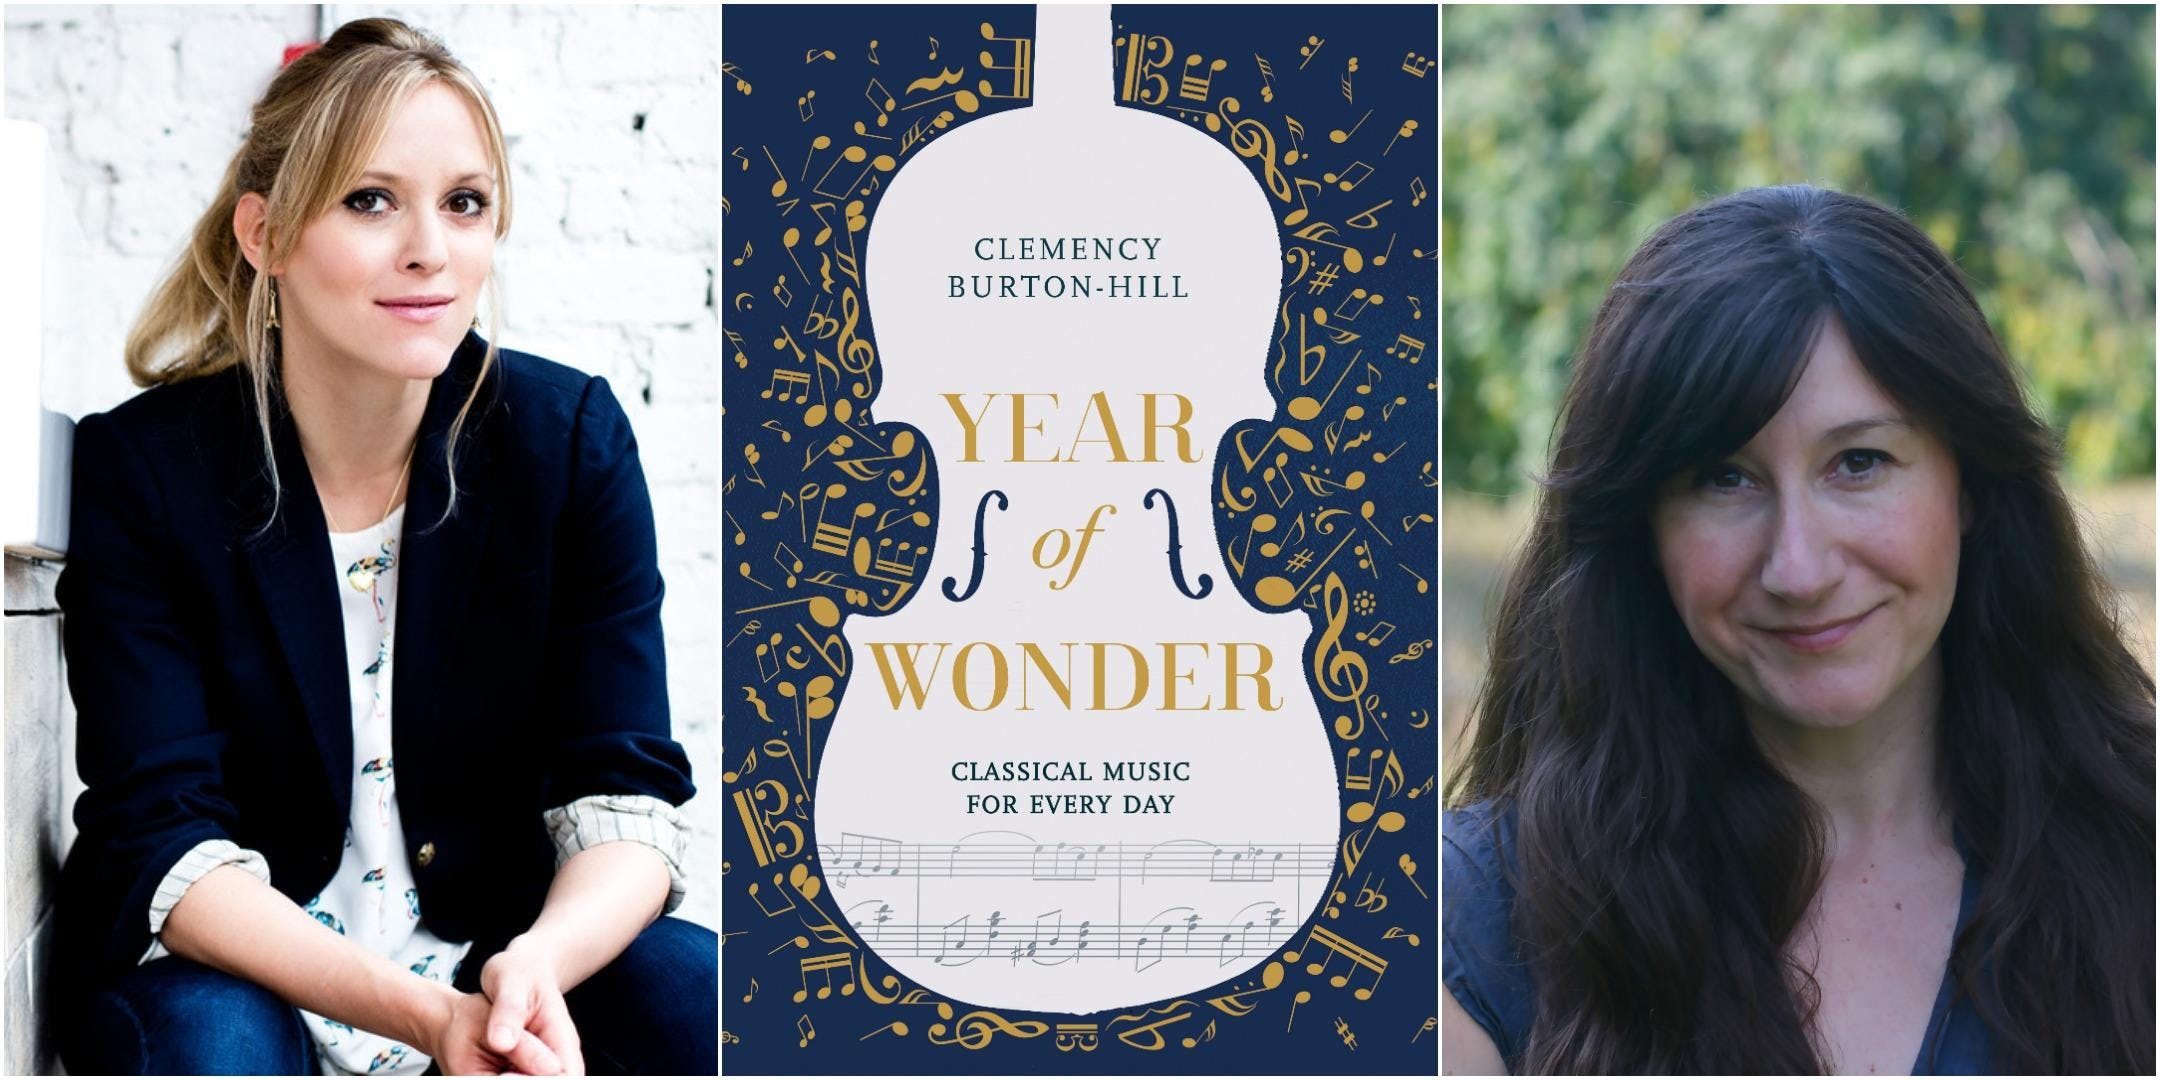 Event 21 Year of Wonder with Clemency Burton-Hill